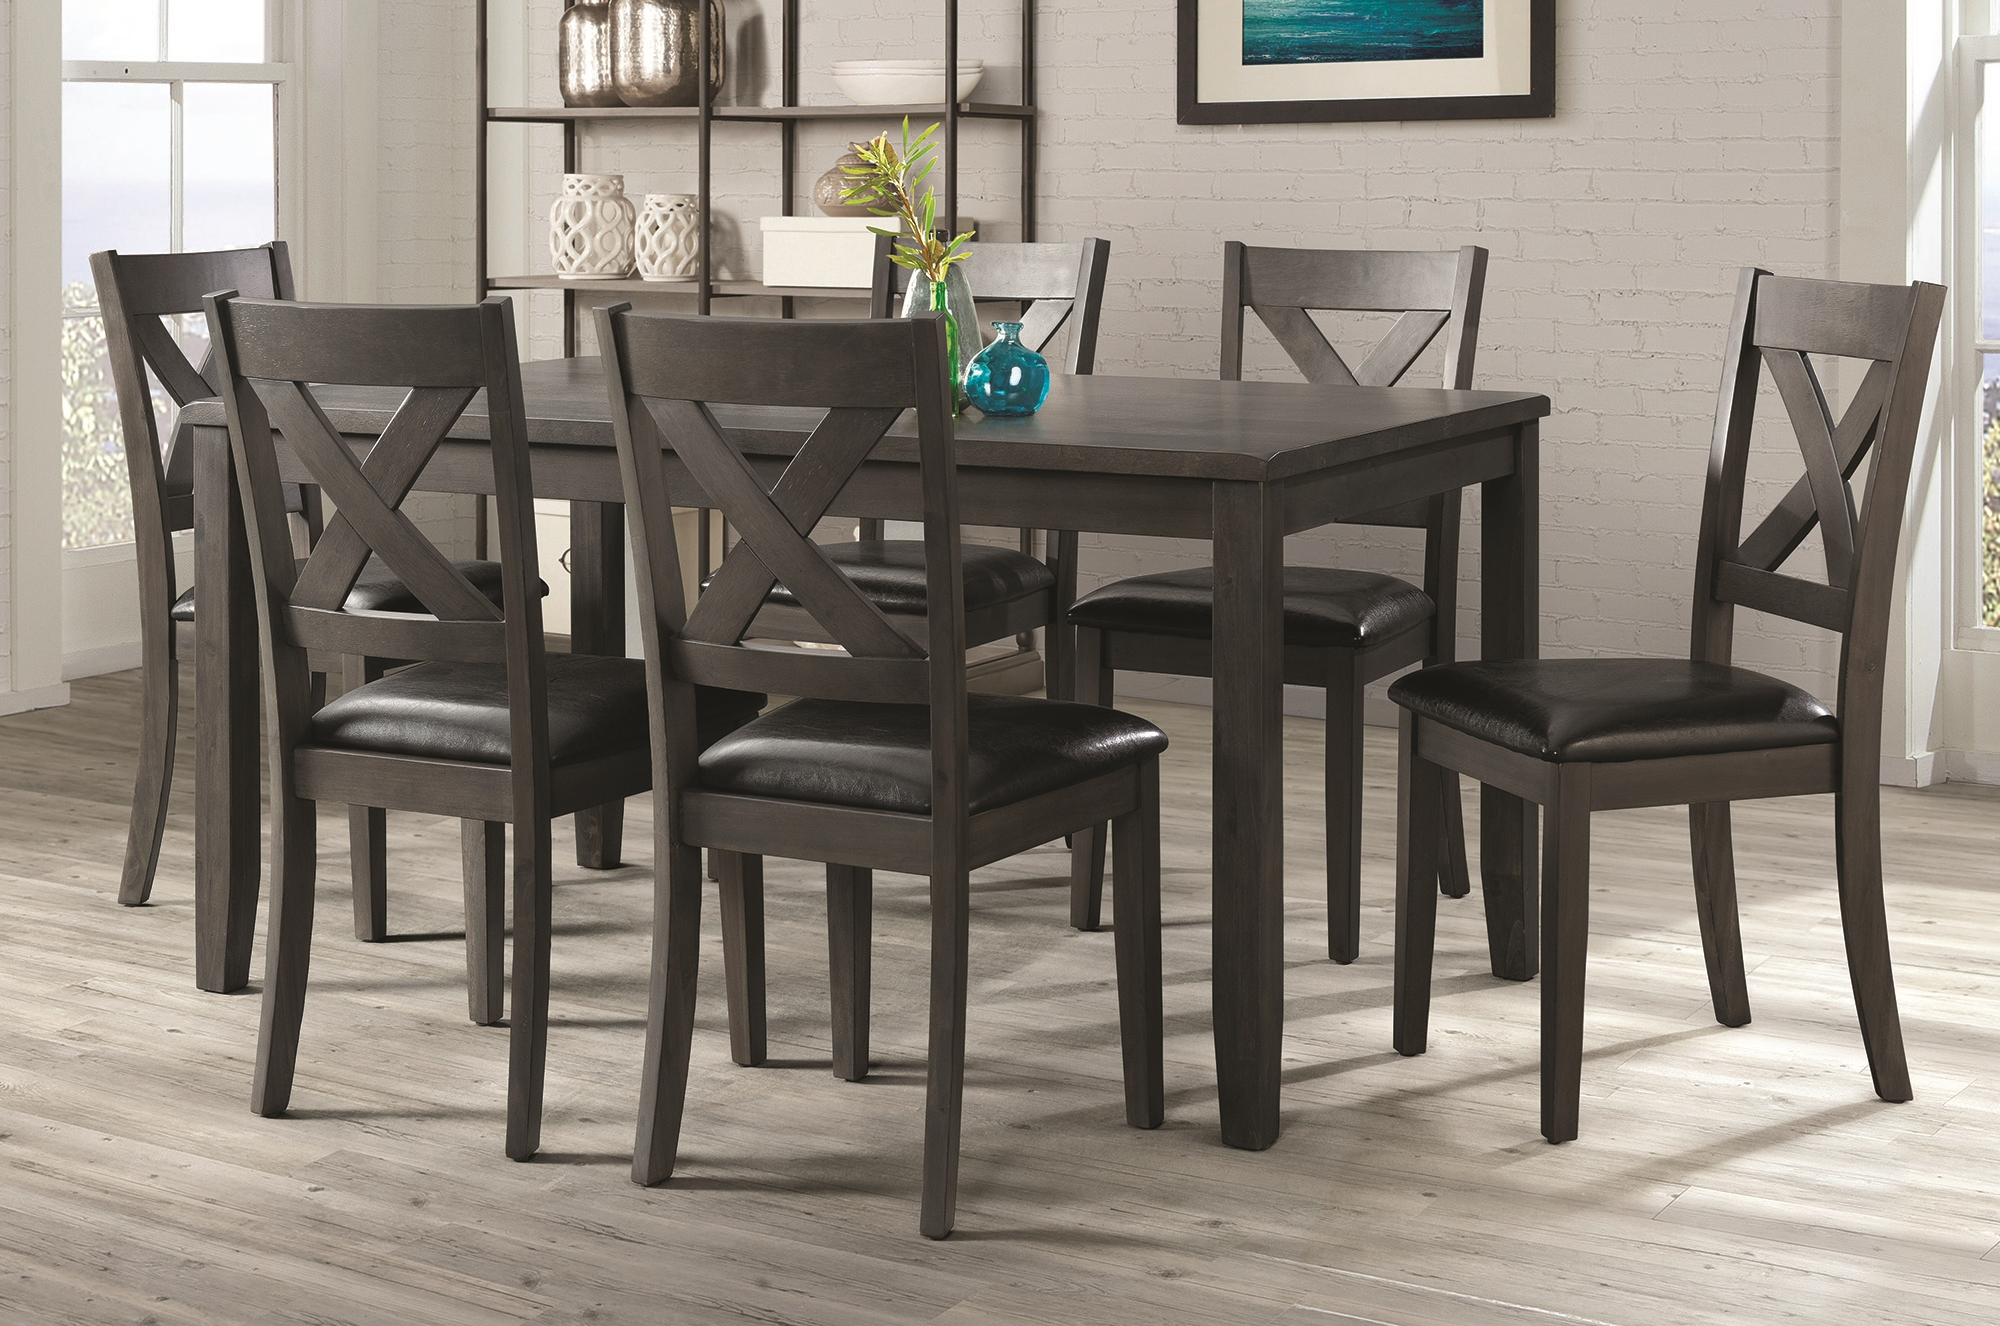 EDAX4007 7pc Alex Dining - Grey